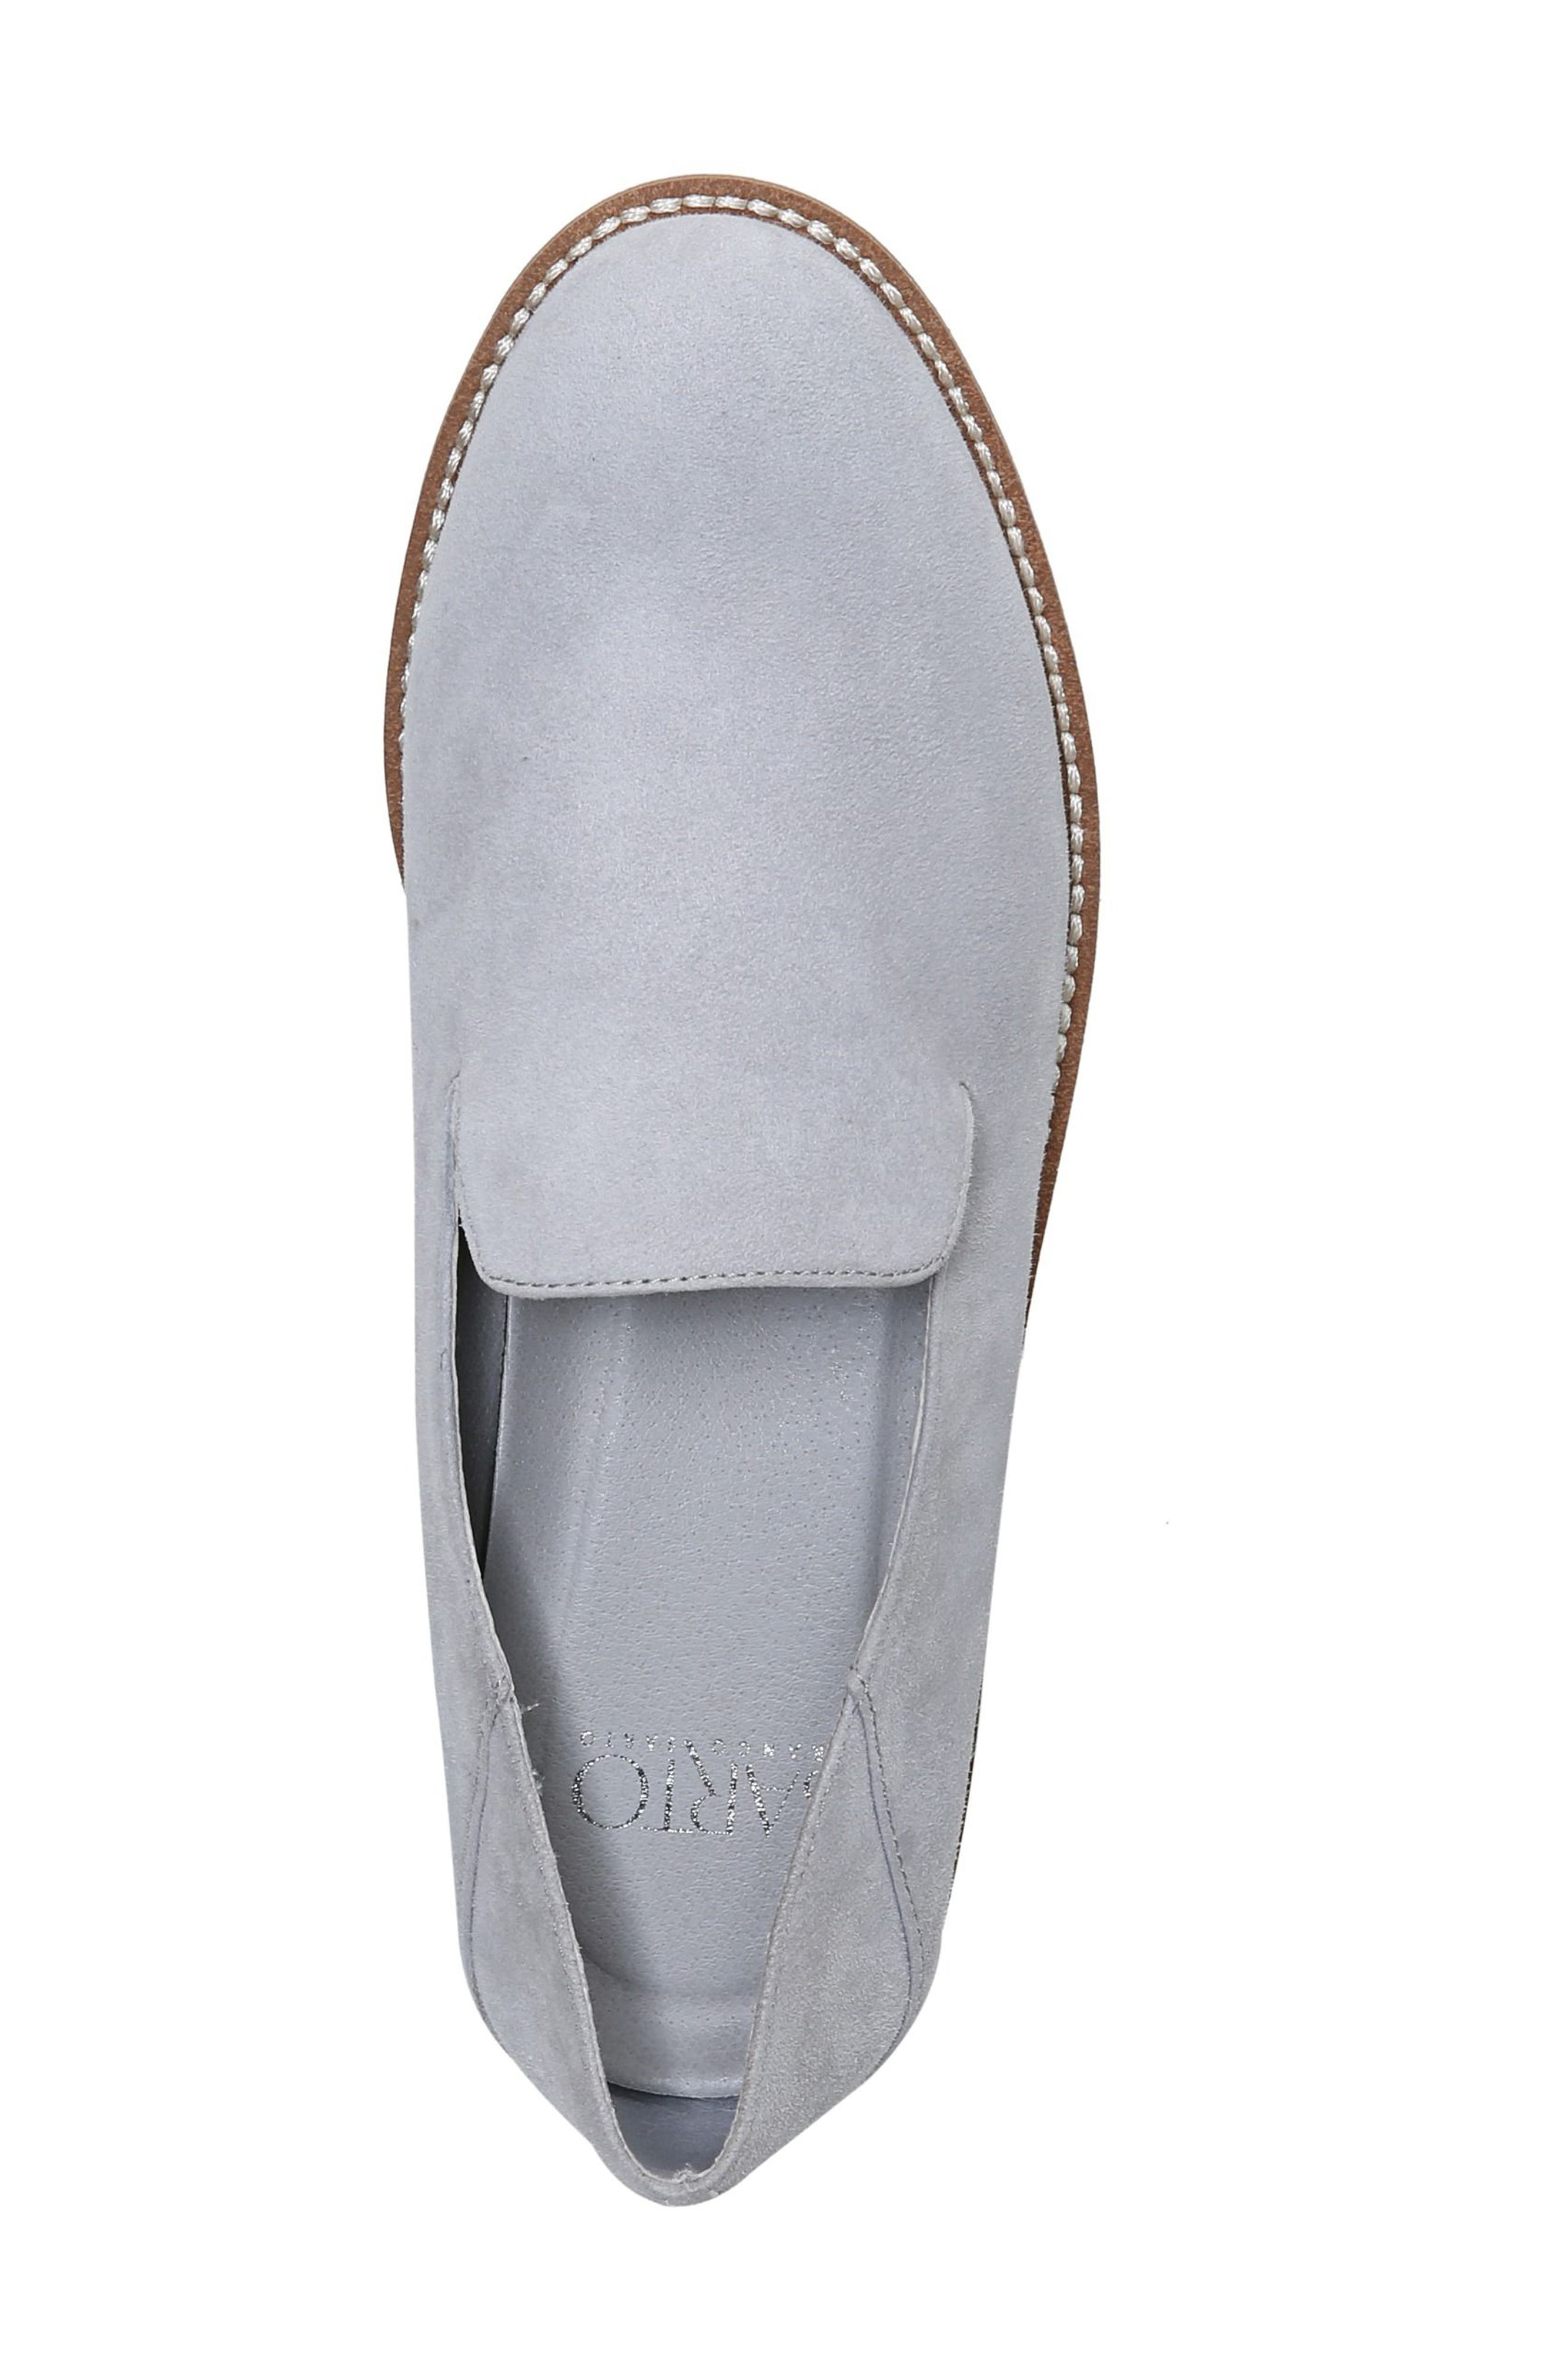 Jaxton Loafer,                             Alternate thumbnail 7, color,                             Artic Grey Suede